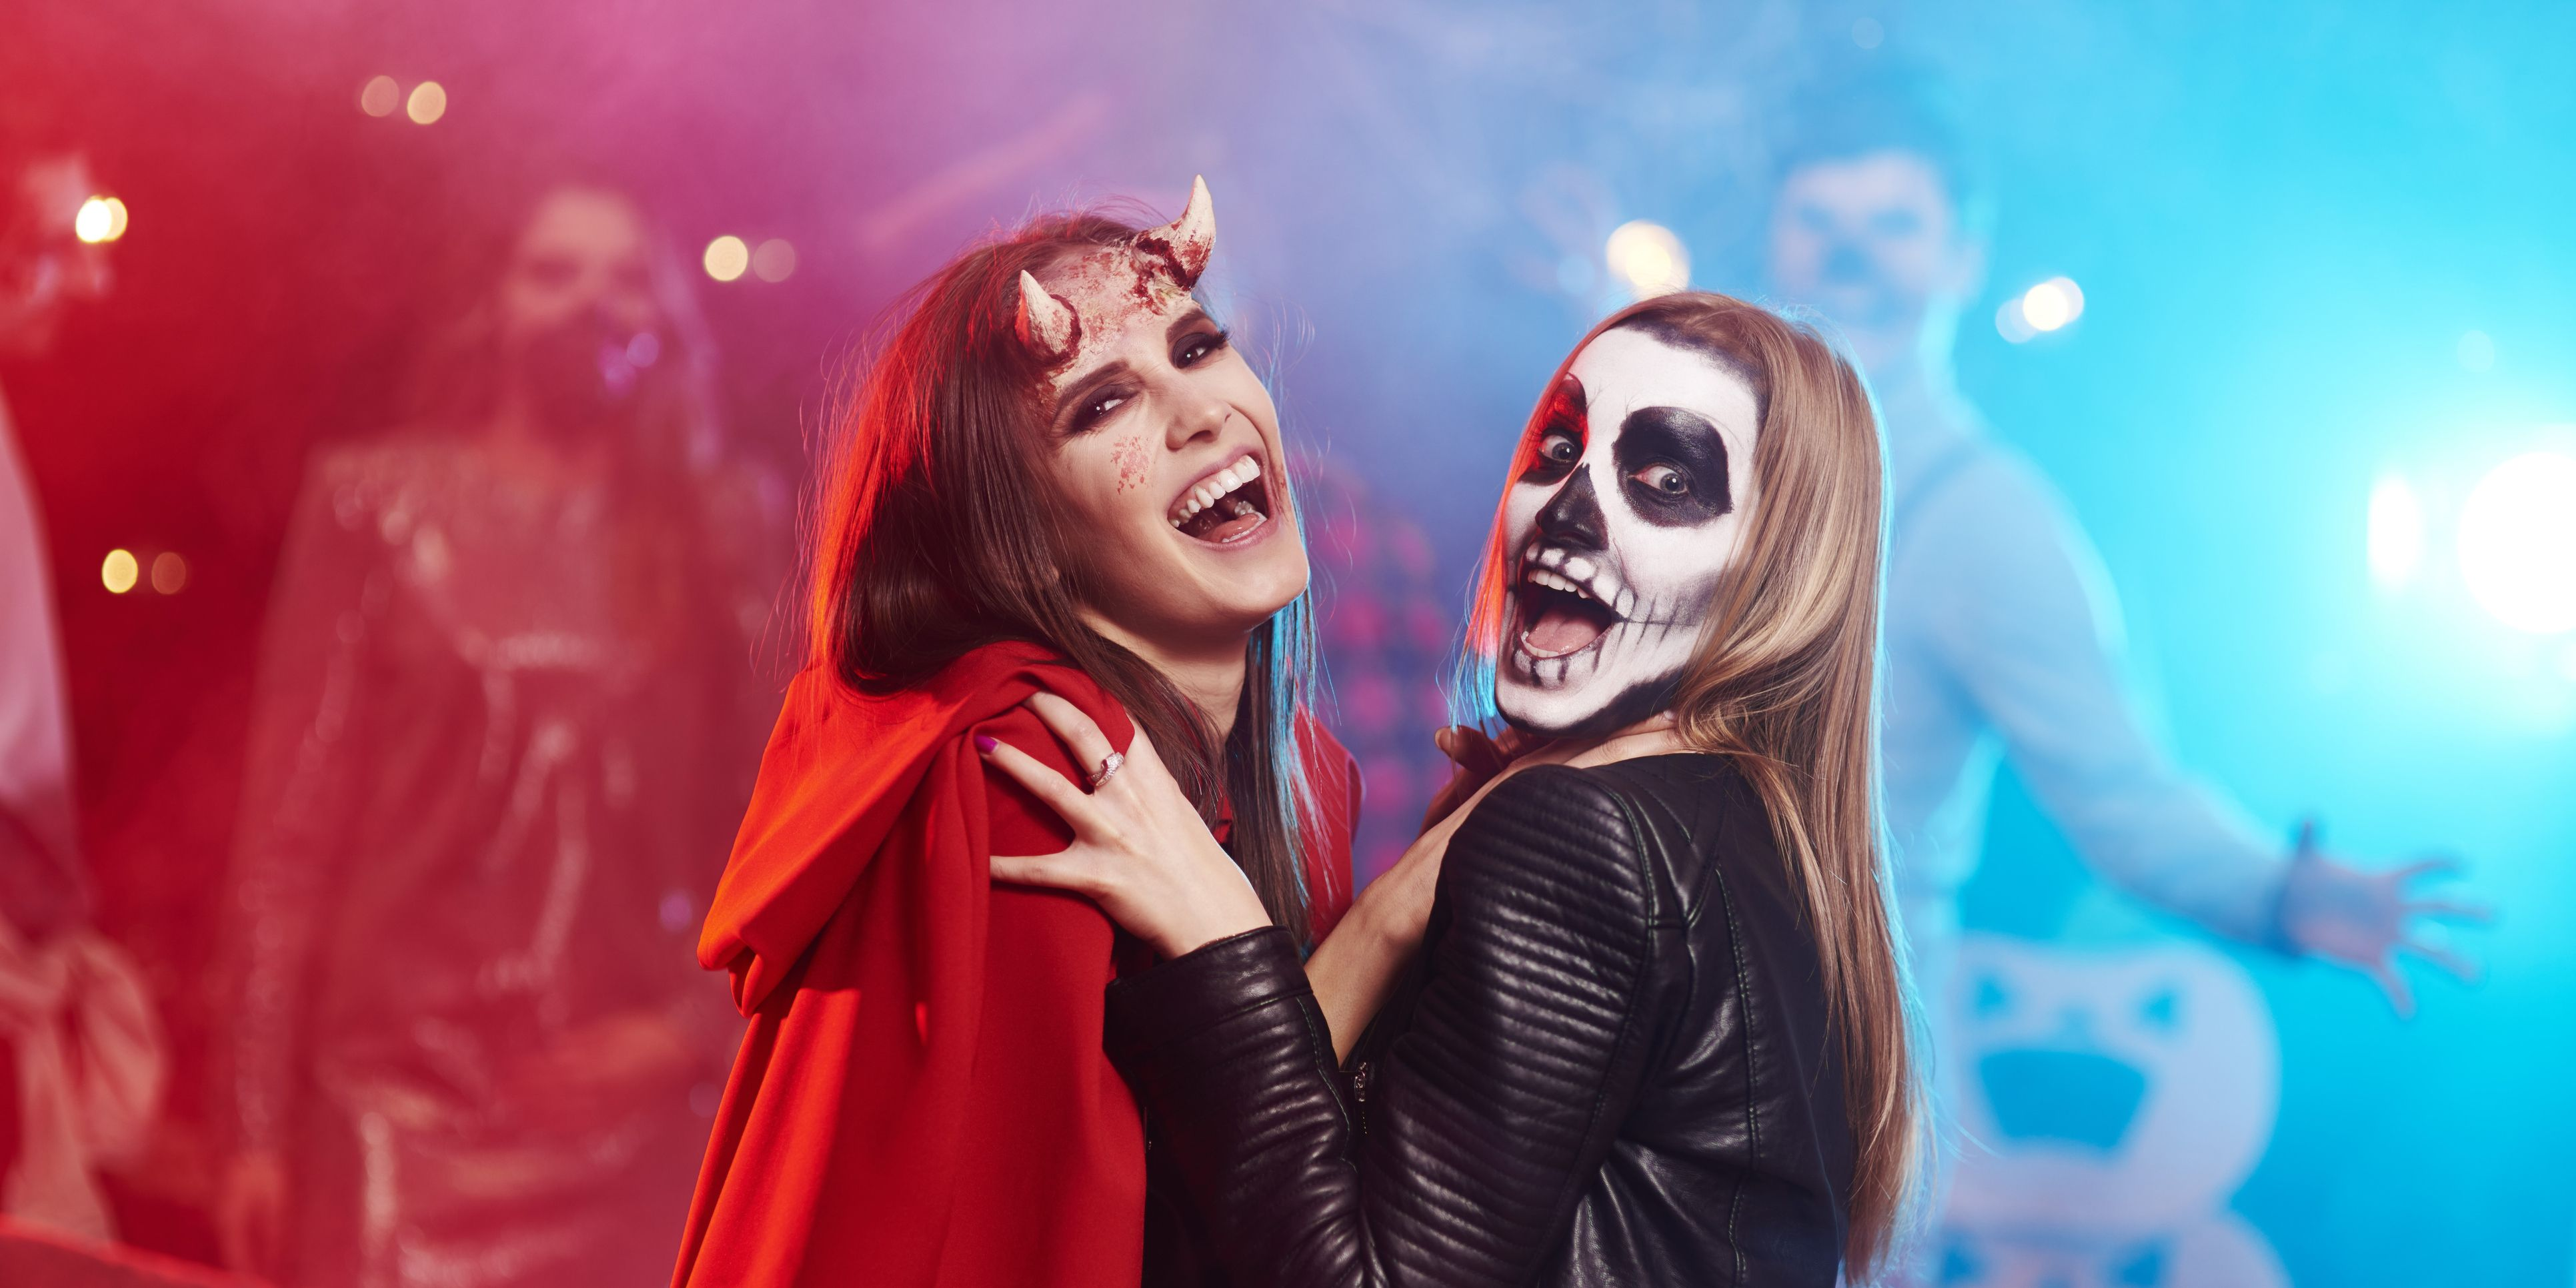 Women in creepy costumes dancing at Halloween party